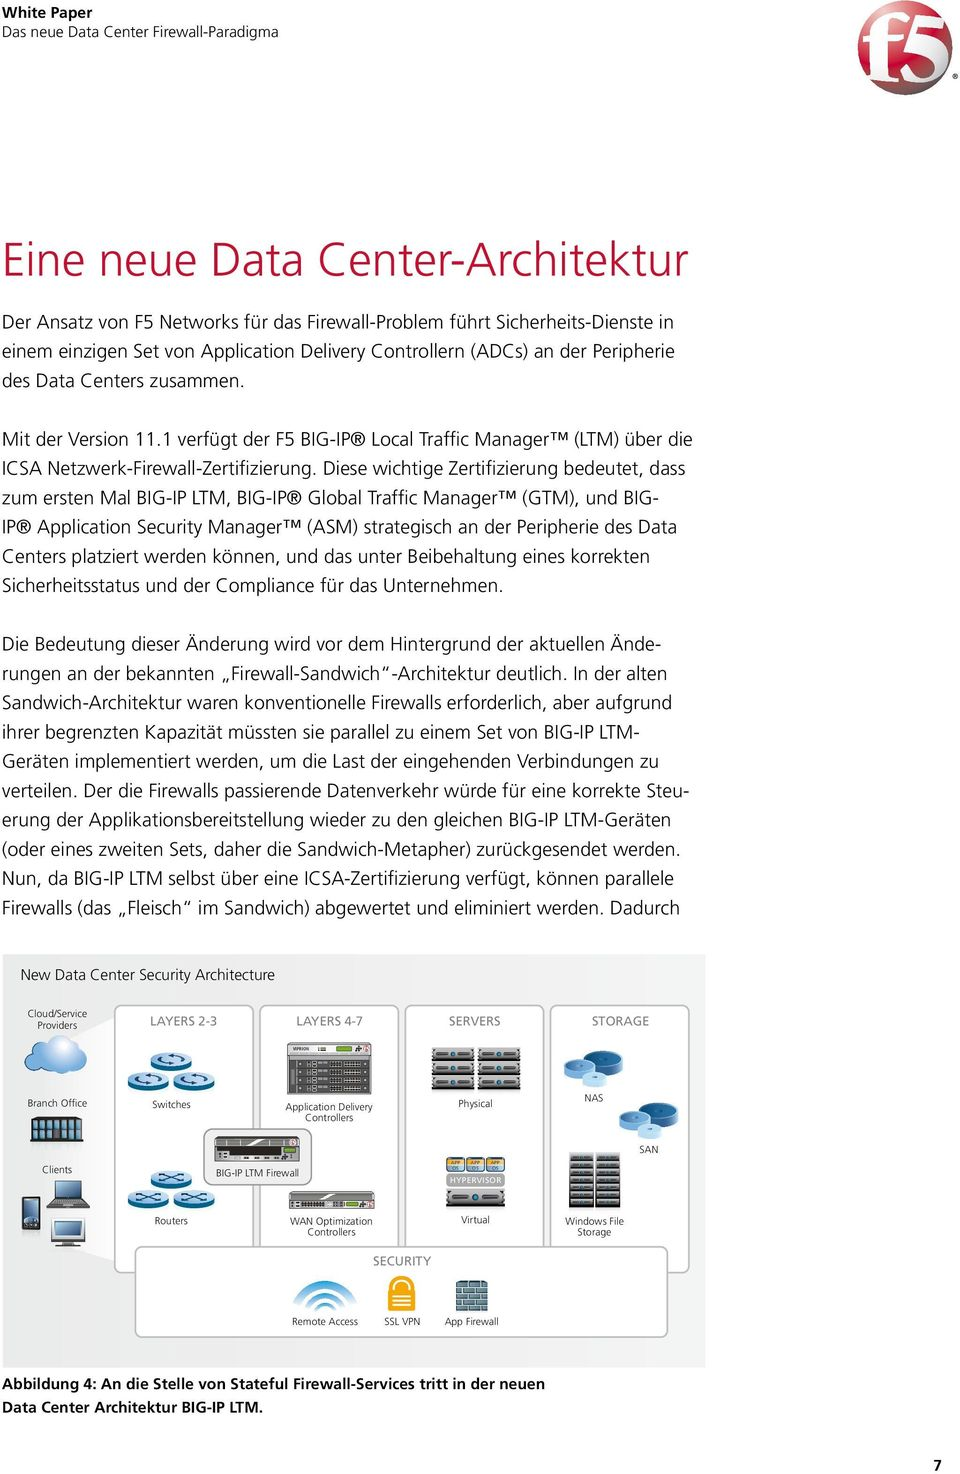 for the organization. des Data Centers zusammen. The significance of this change becomes apparent in light of current changes to the Mit well-known der Version firewall 11.